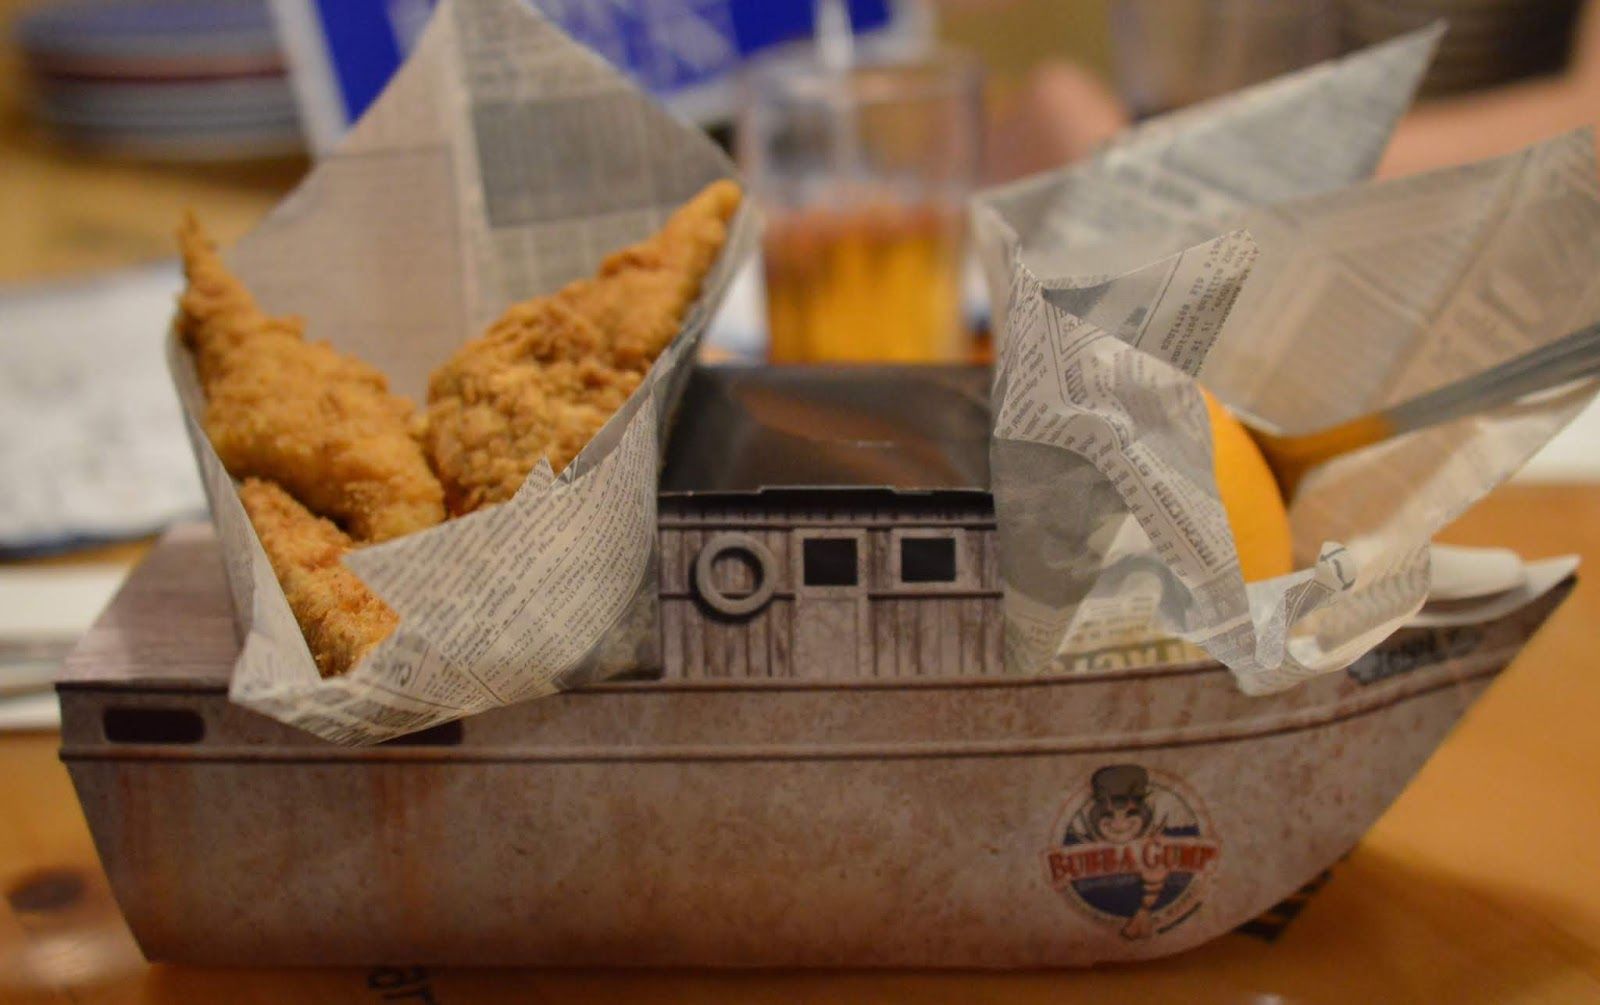 The LNER Family Return Ticket Newcastle-London. #OurLNER #FamilyReturn  - Children's Meal at Bubba Gump London